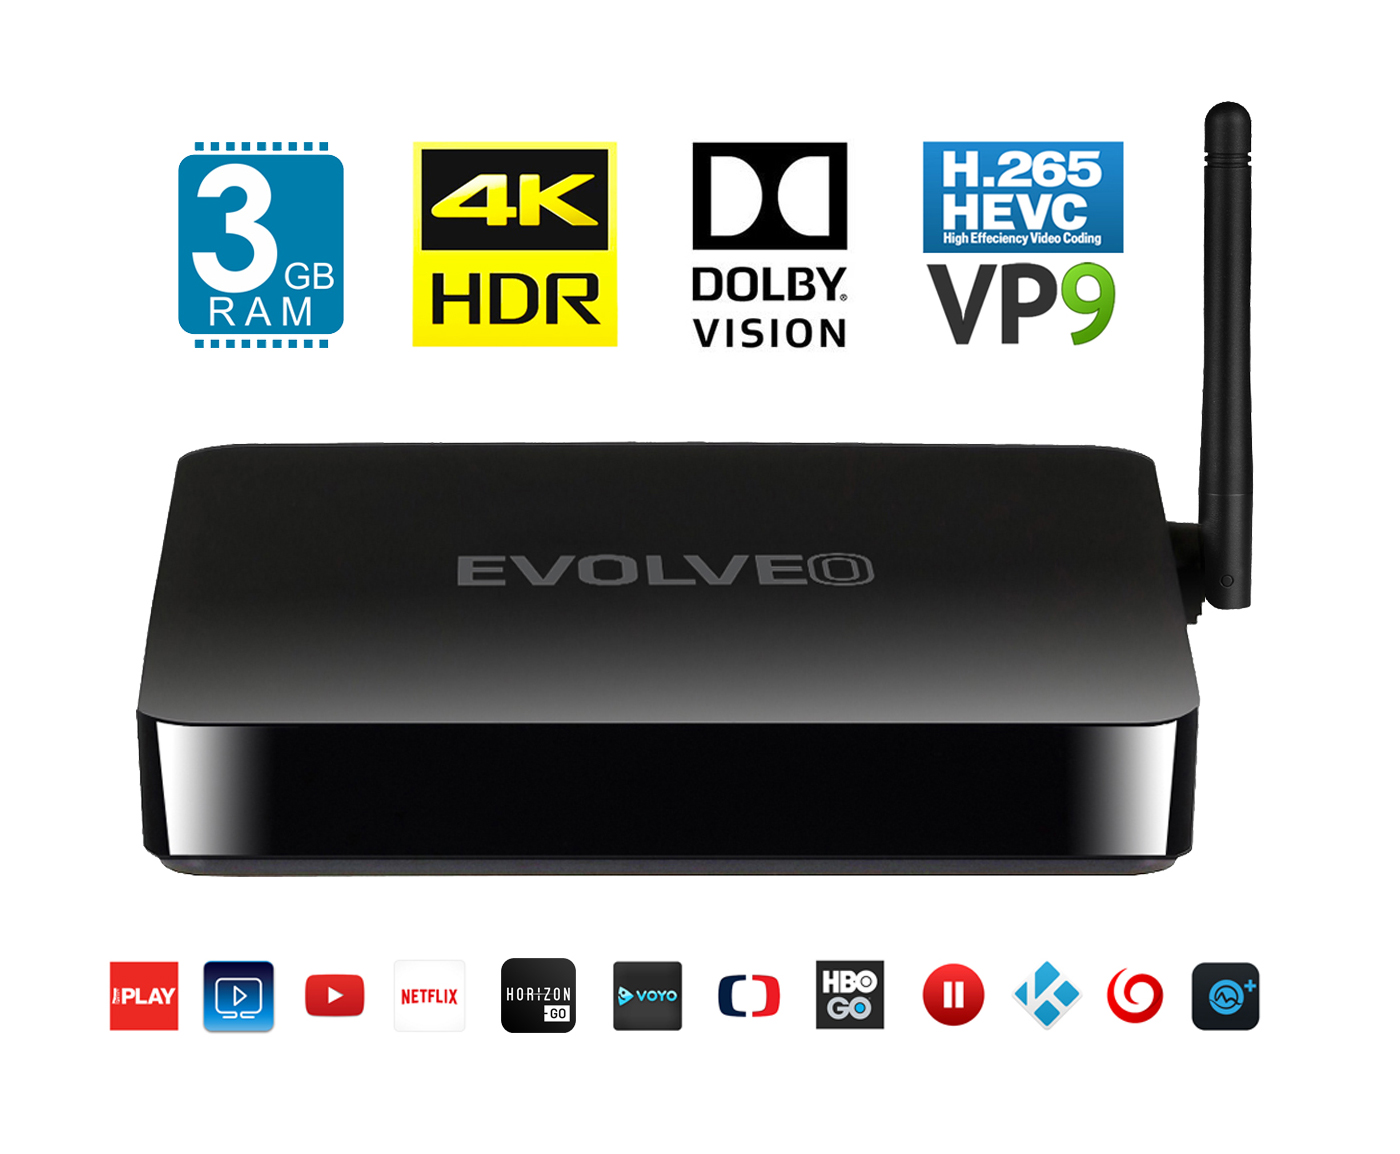 EVOLVEO MultiMedia Box M8 multimediální centrum